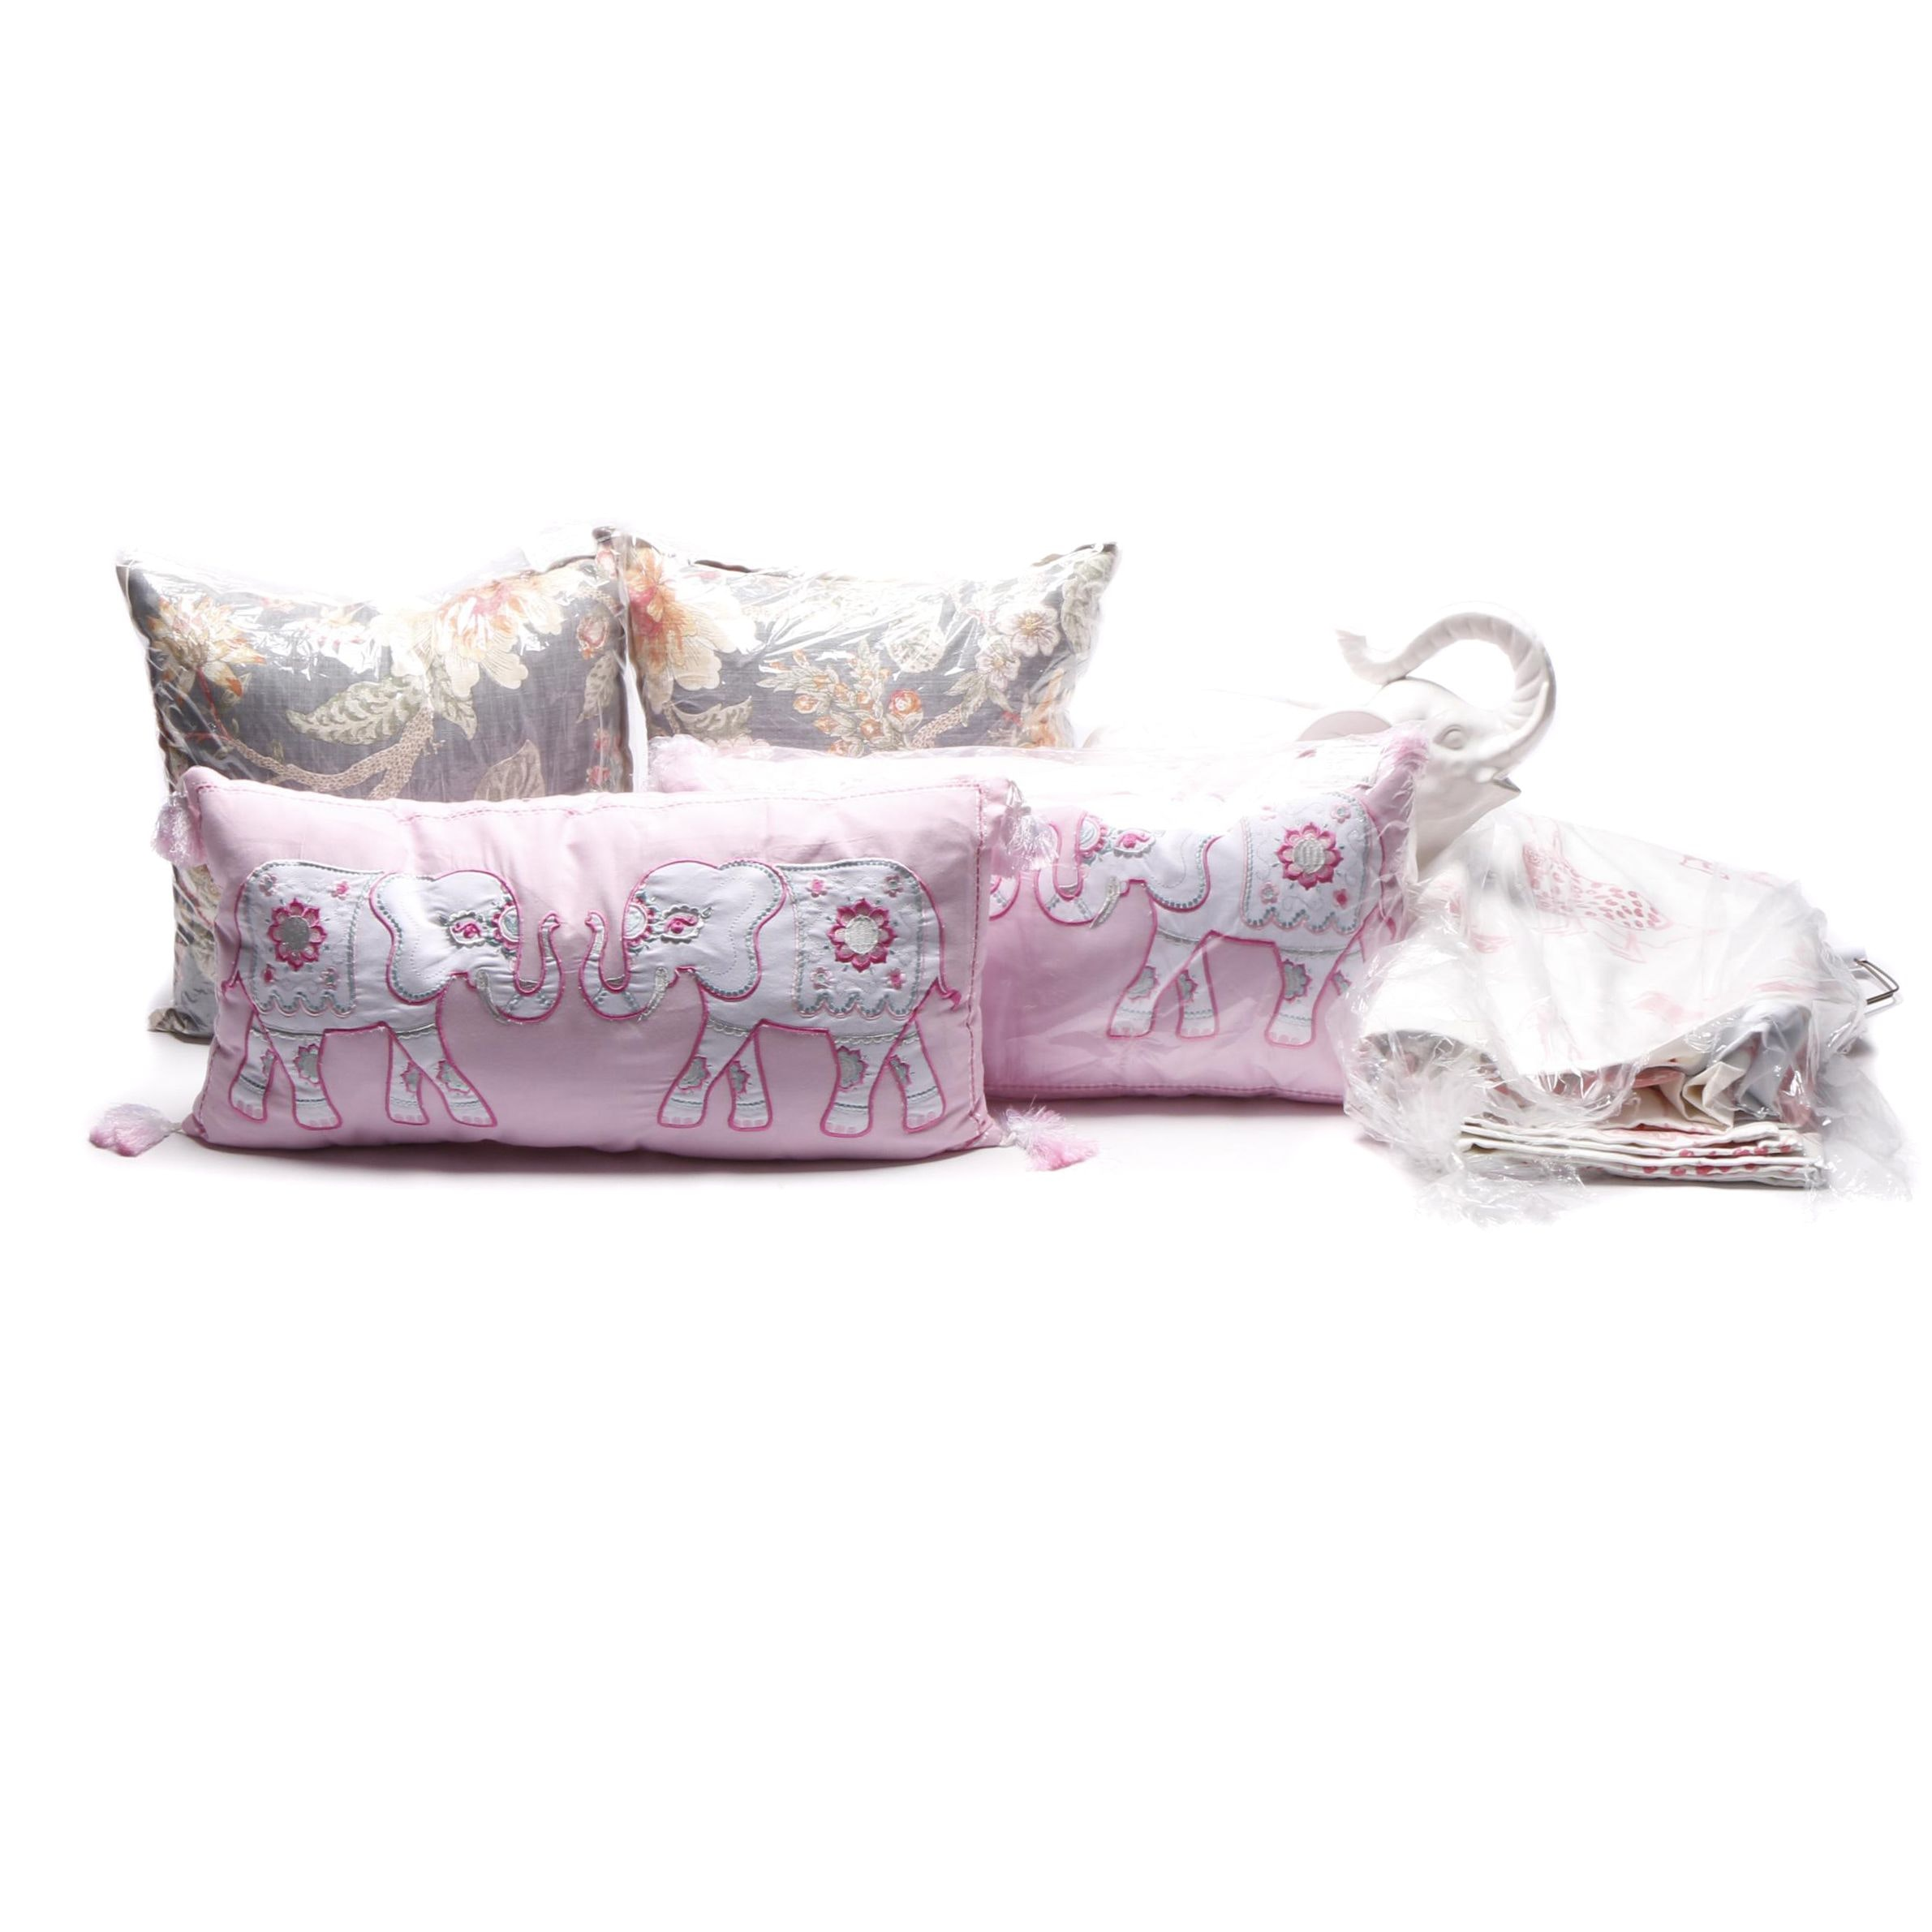 Pink and White Decor Items Including Accent Pillows by Pillow Perfect